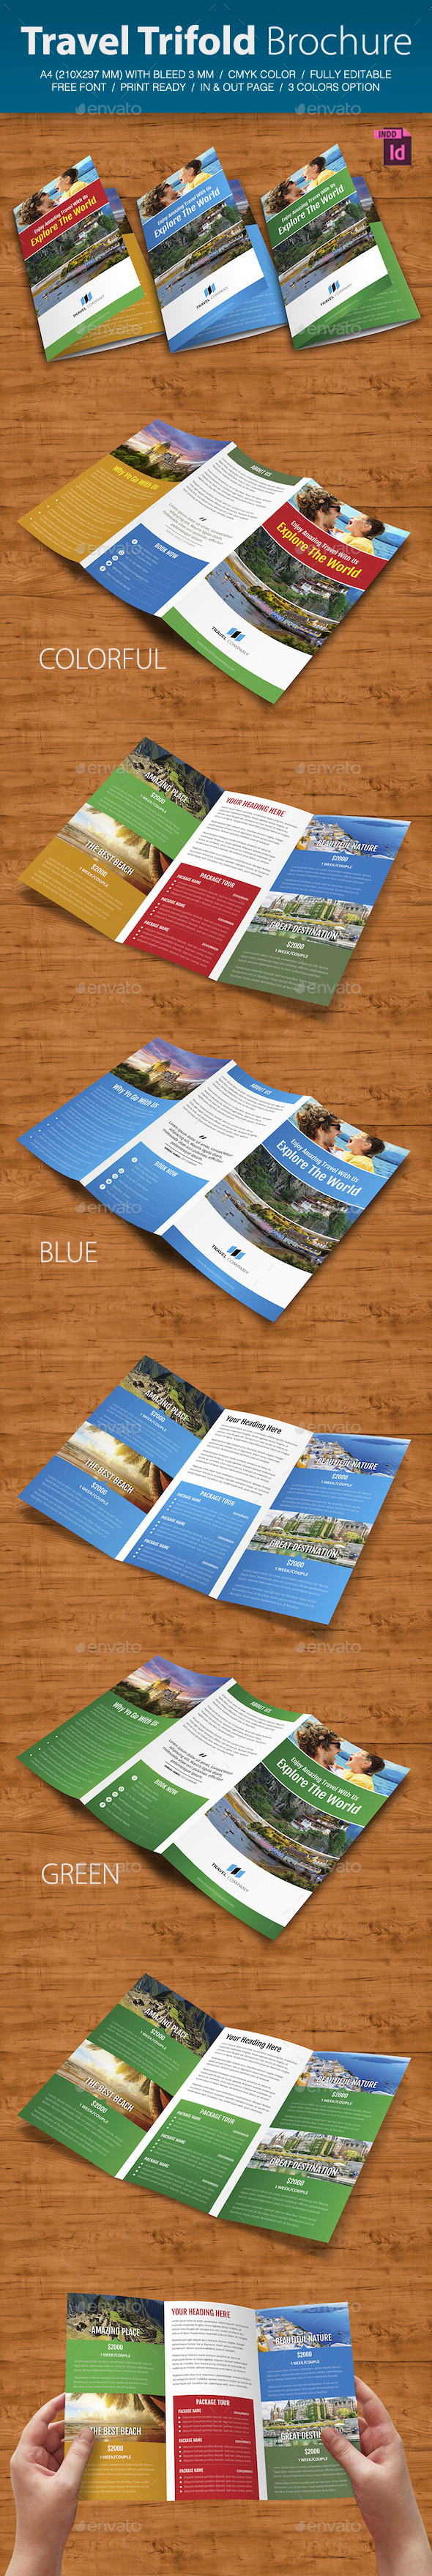 GraphicRiver Travel Trifold Brochure V.2 8974032